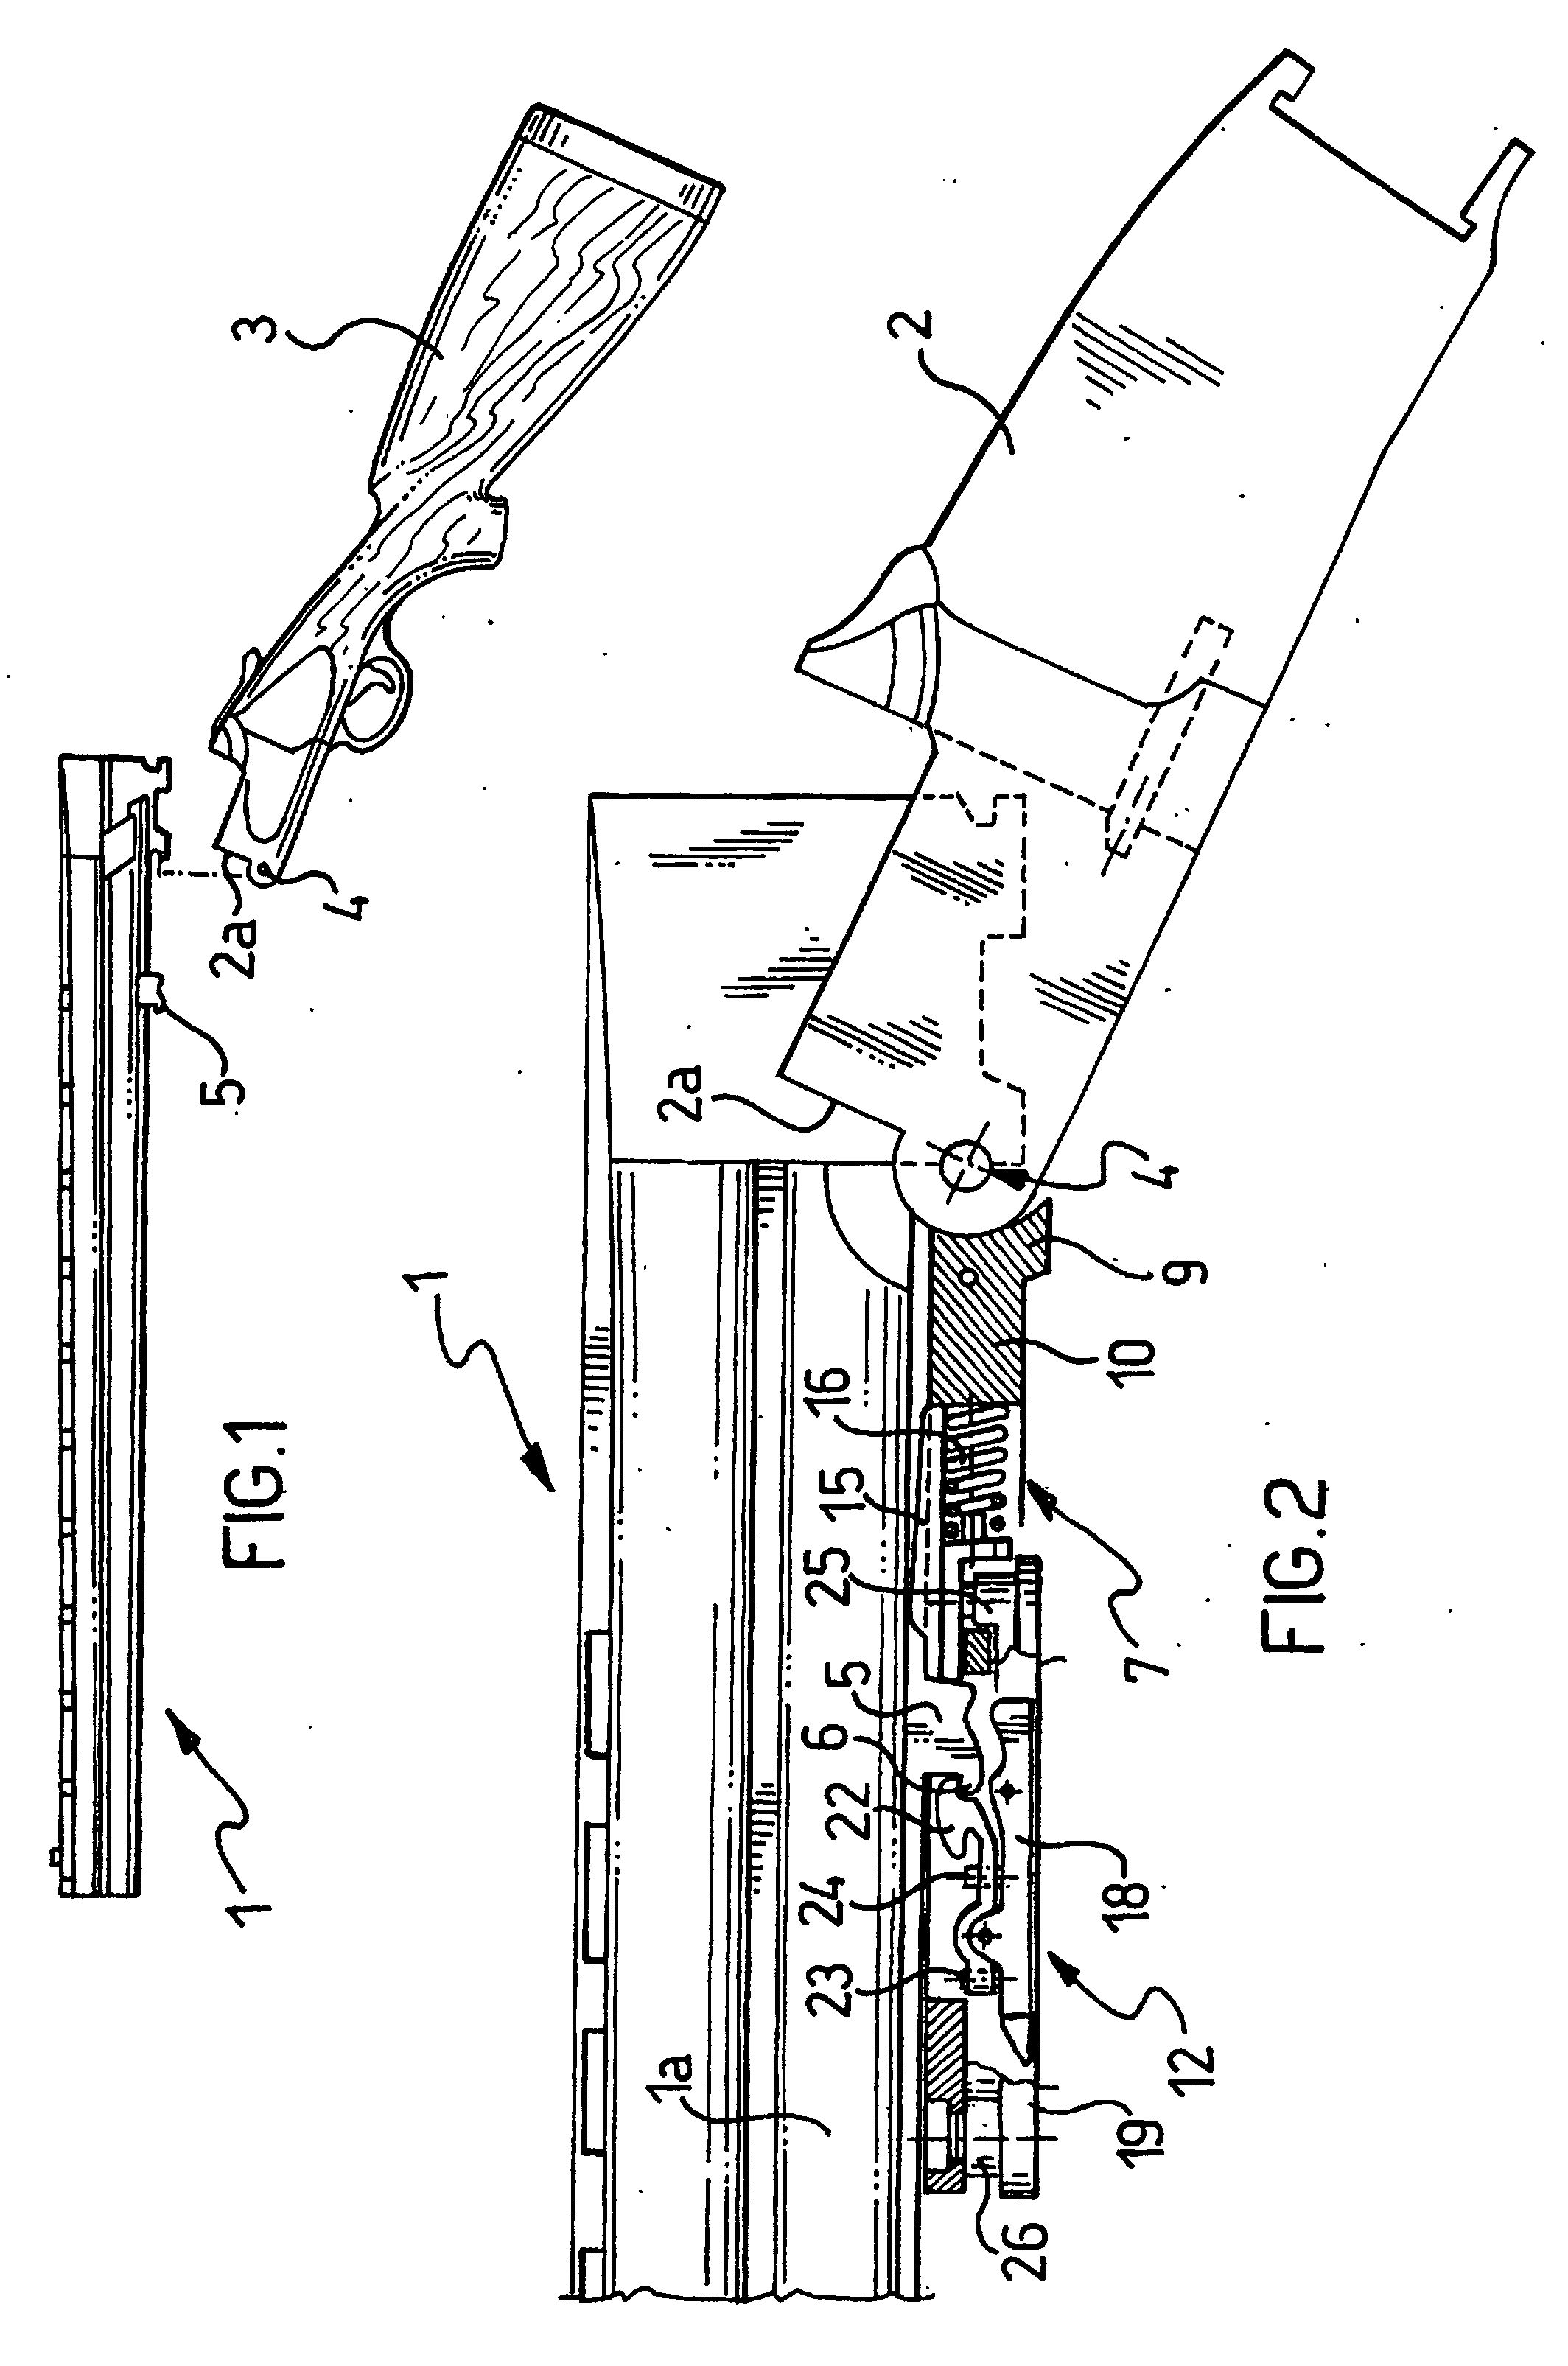 Patent Ep0862040b1 A Break Action Shotgun With A Device